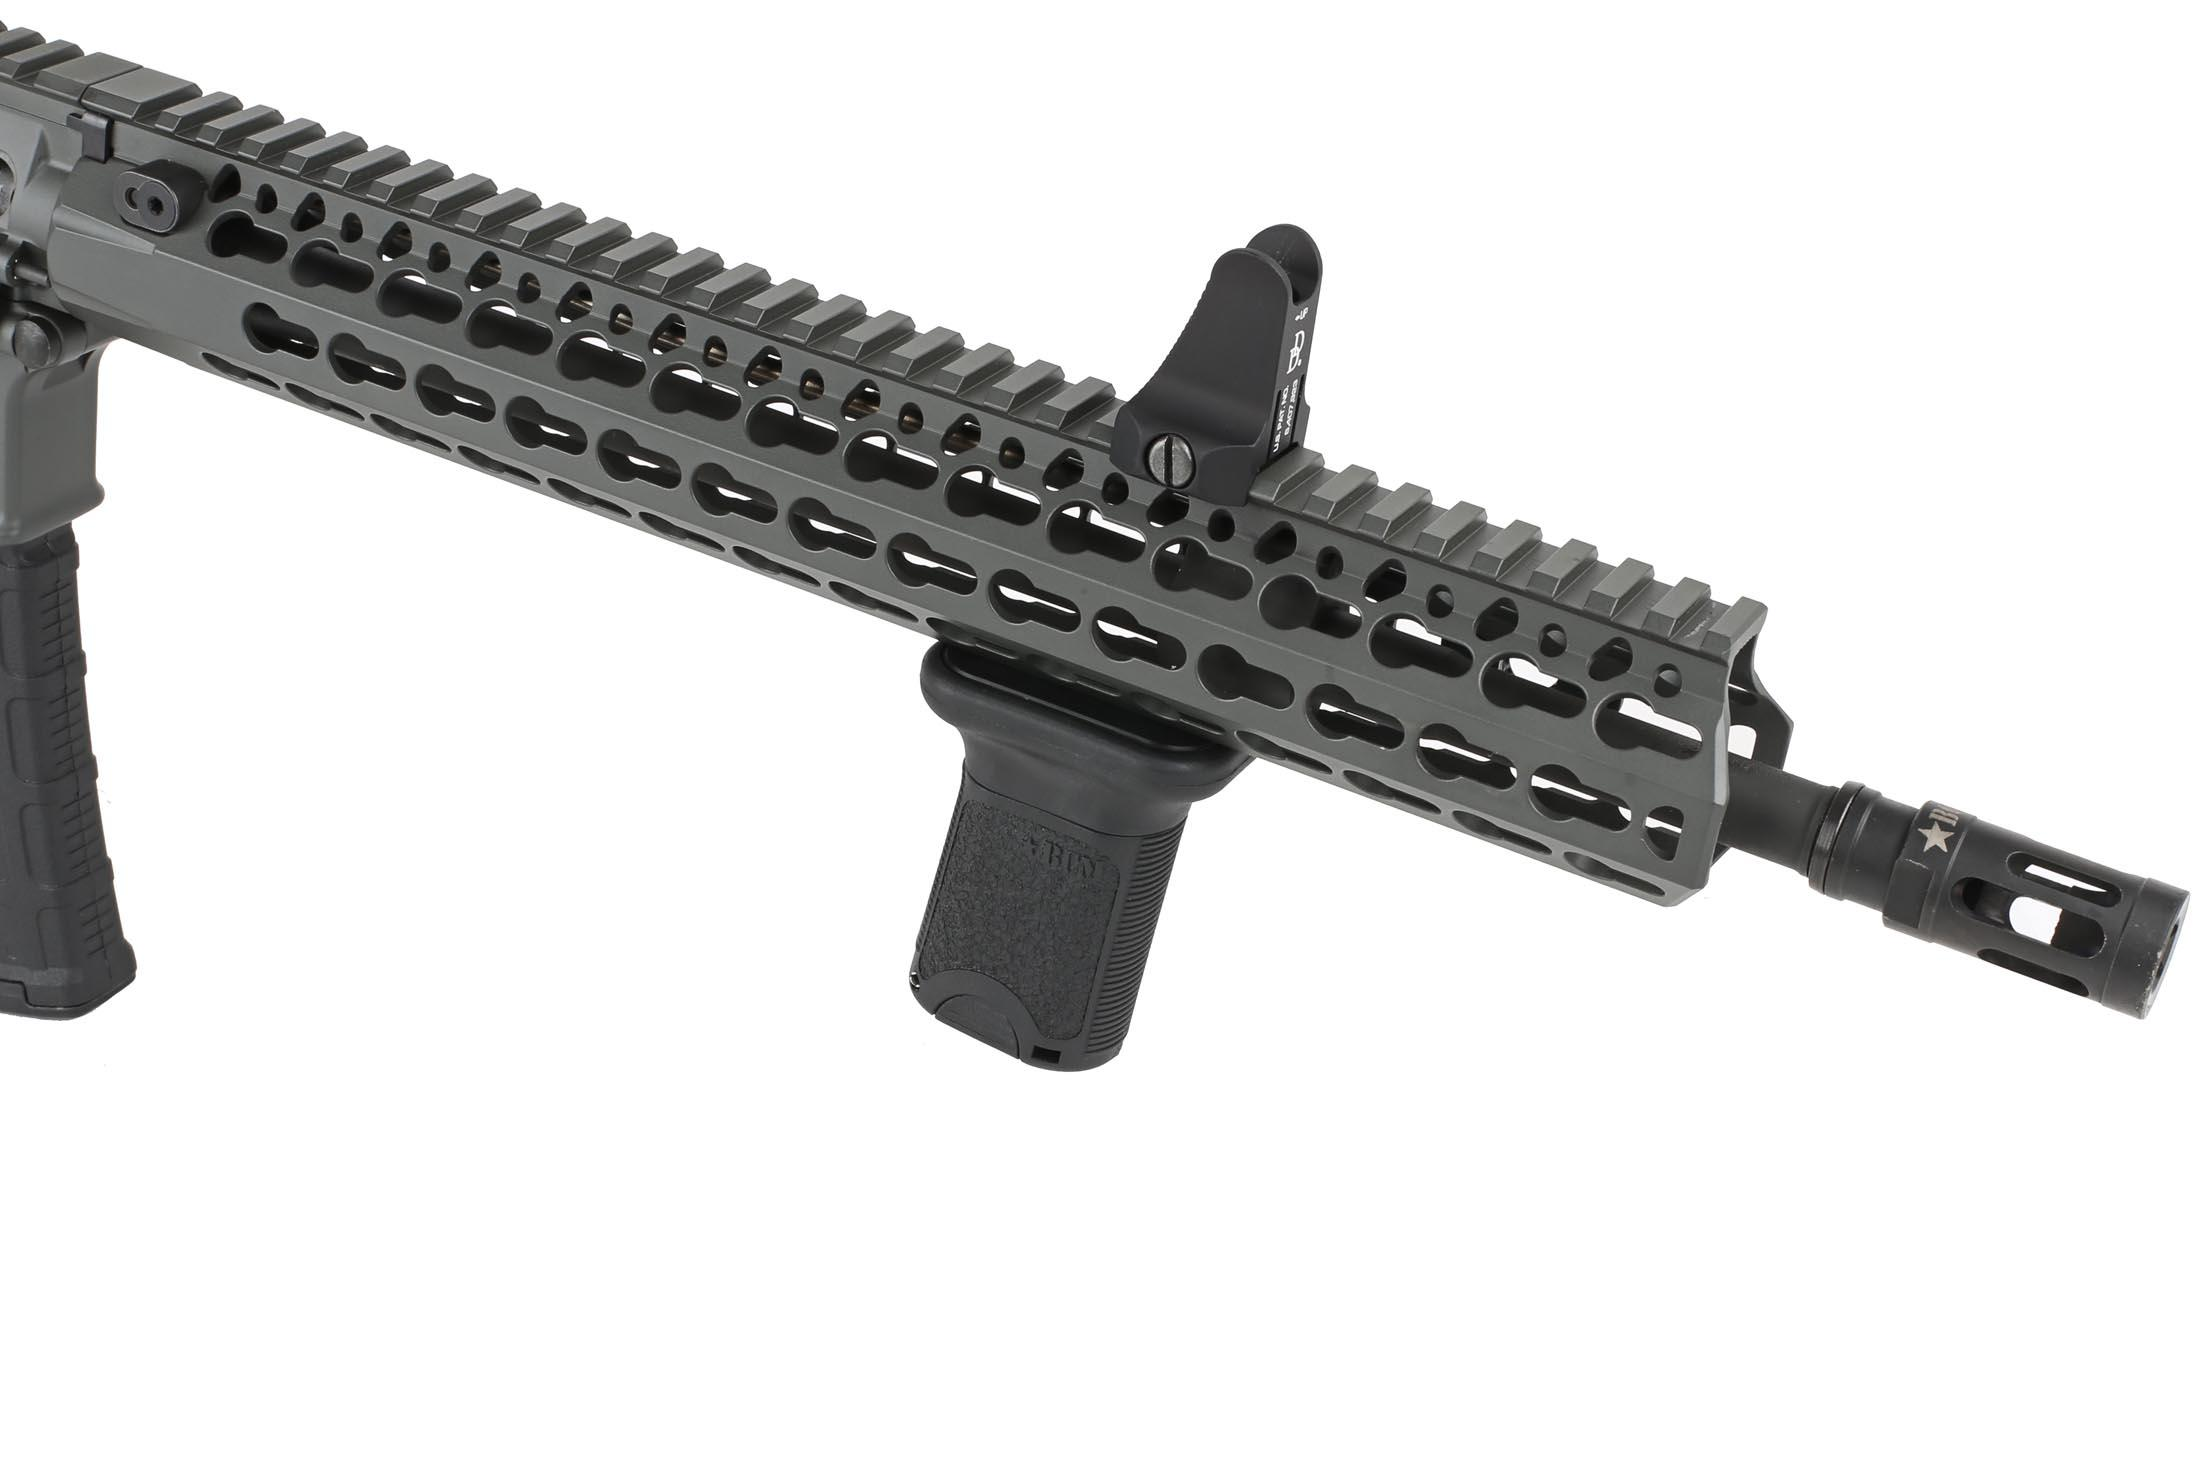 The Bravo Company BCM Gunfighter vertical grip short features an aggressive surface texture